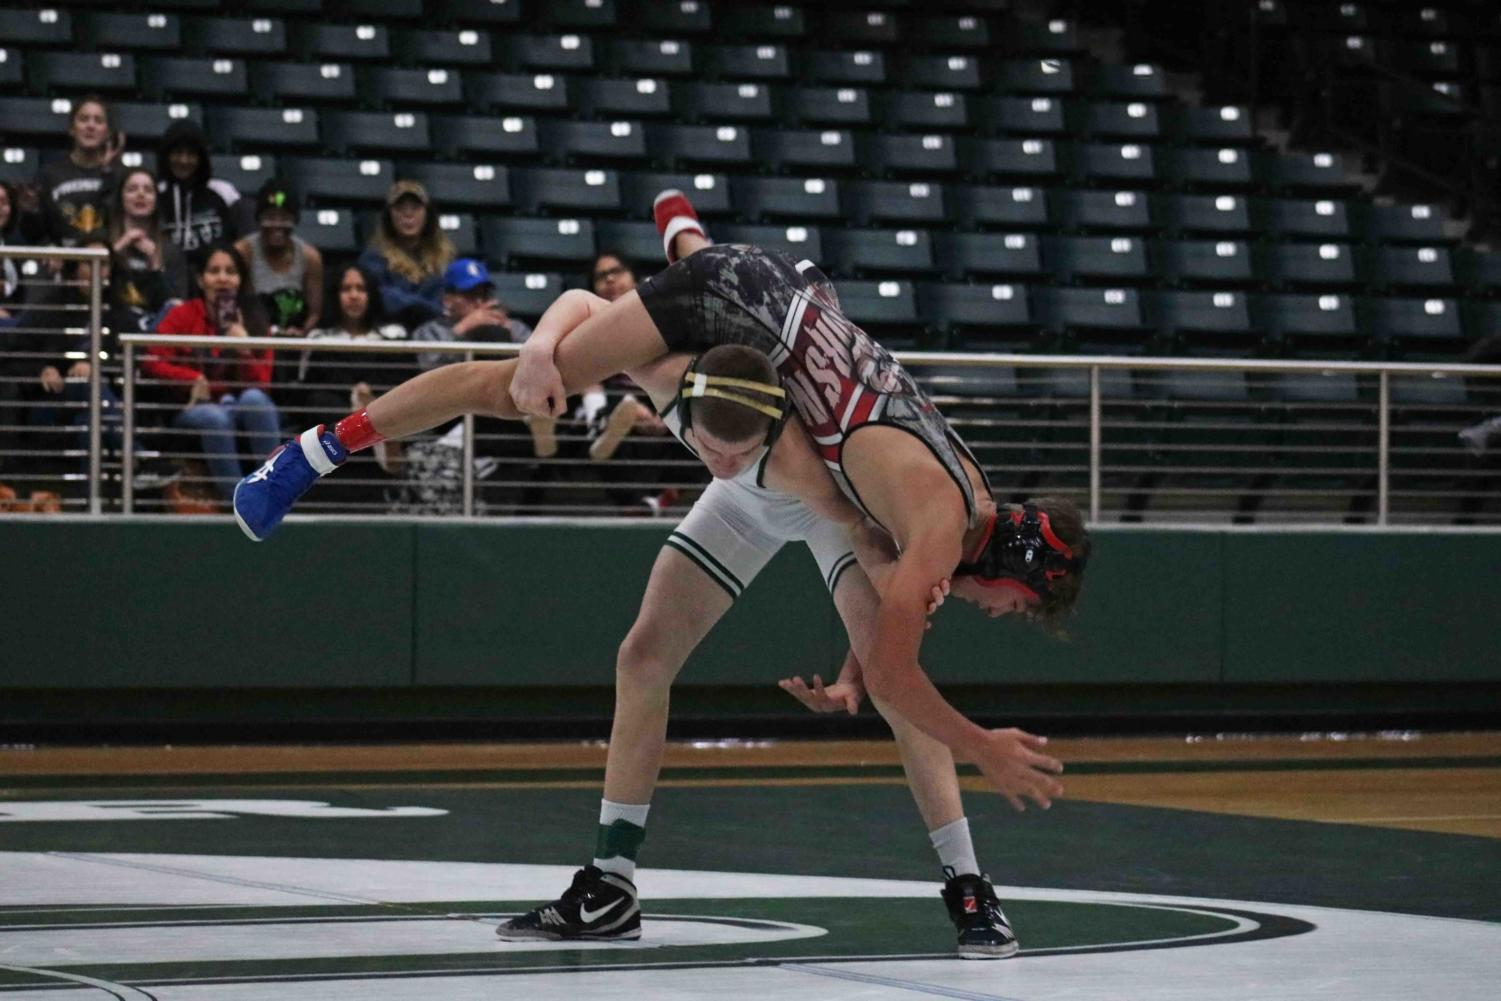 Boys wrestling competes in 1st tournament of season